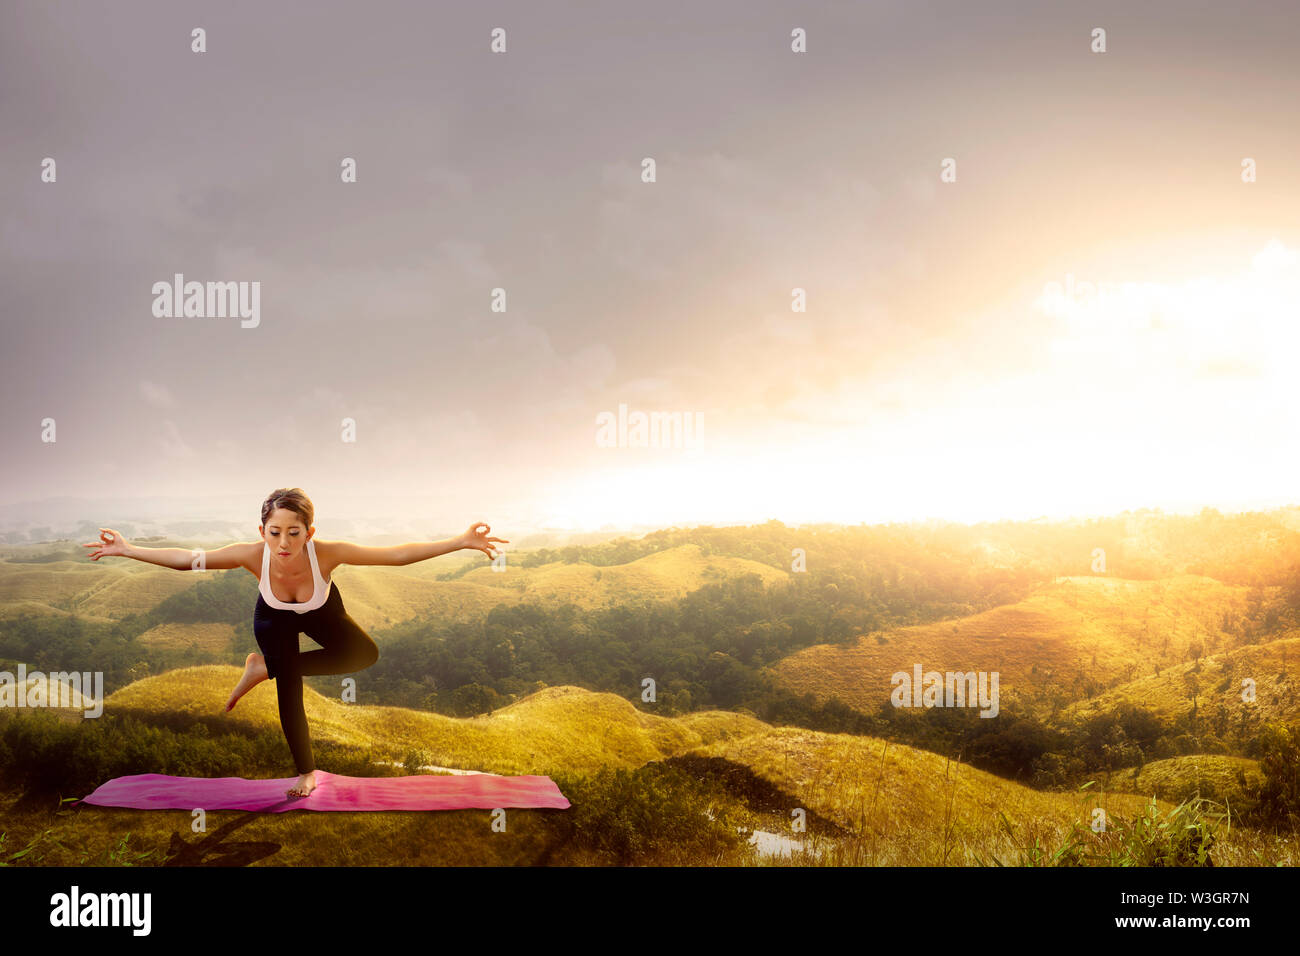 Asian healthy woman practicing yoga on the carpet at hills with sunset sky background - Stock Image